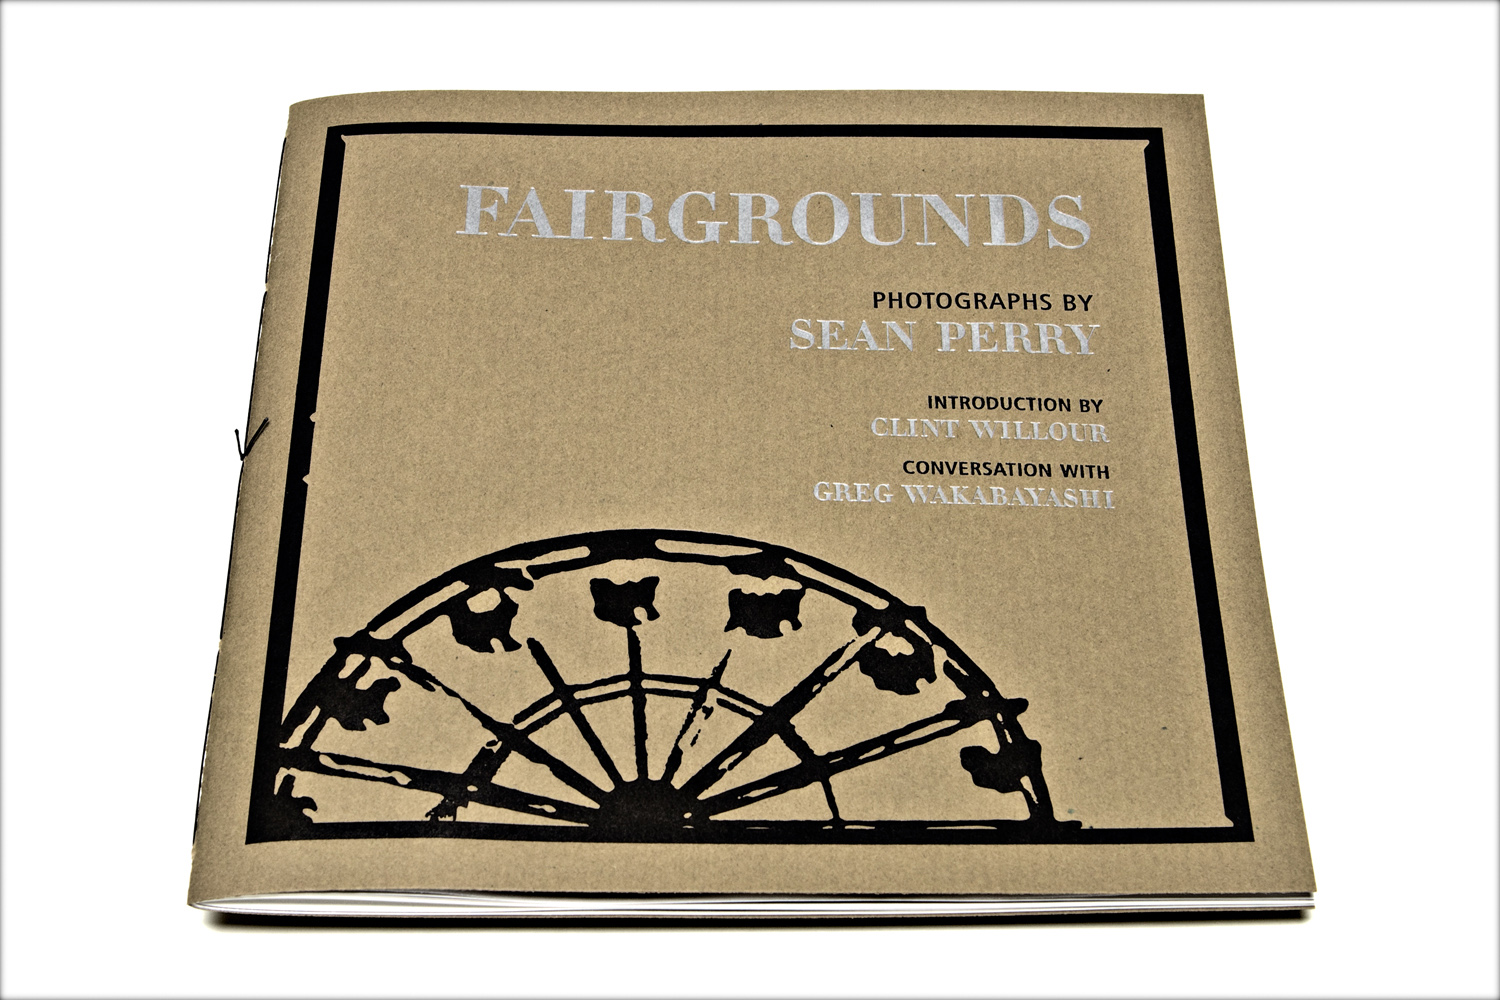 Sean Perry Photographs • Fairgrounds, published by Cloverleaf Press